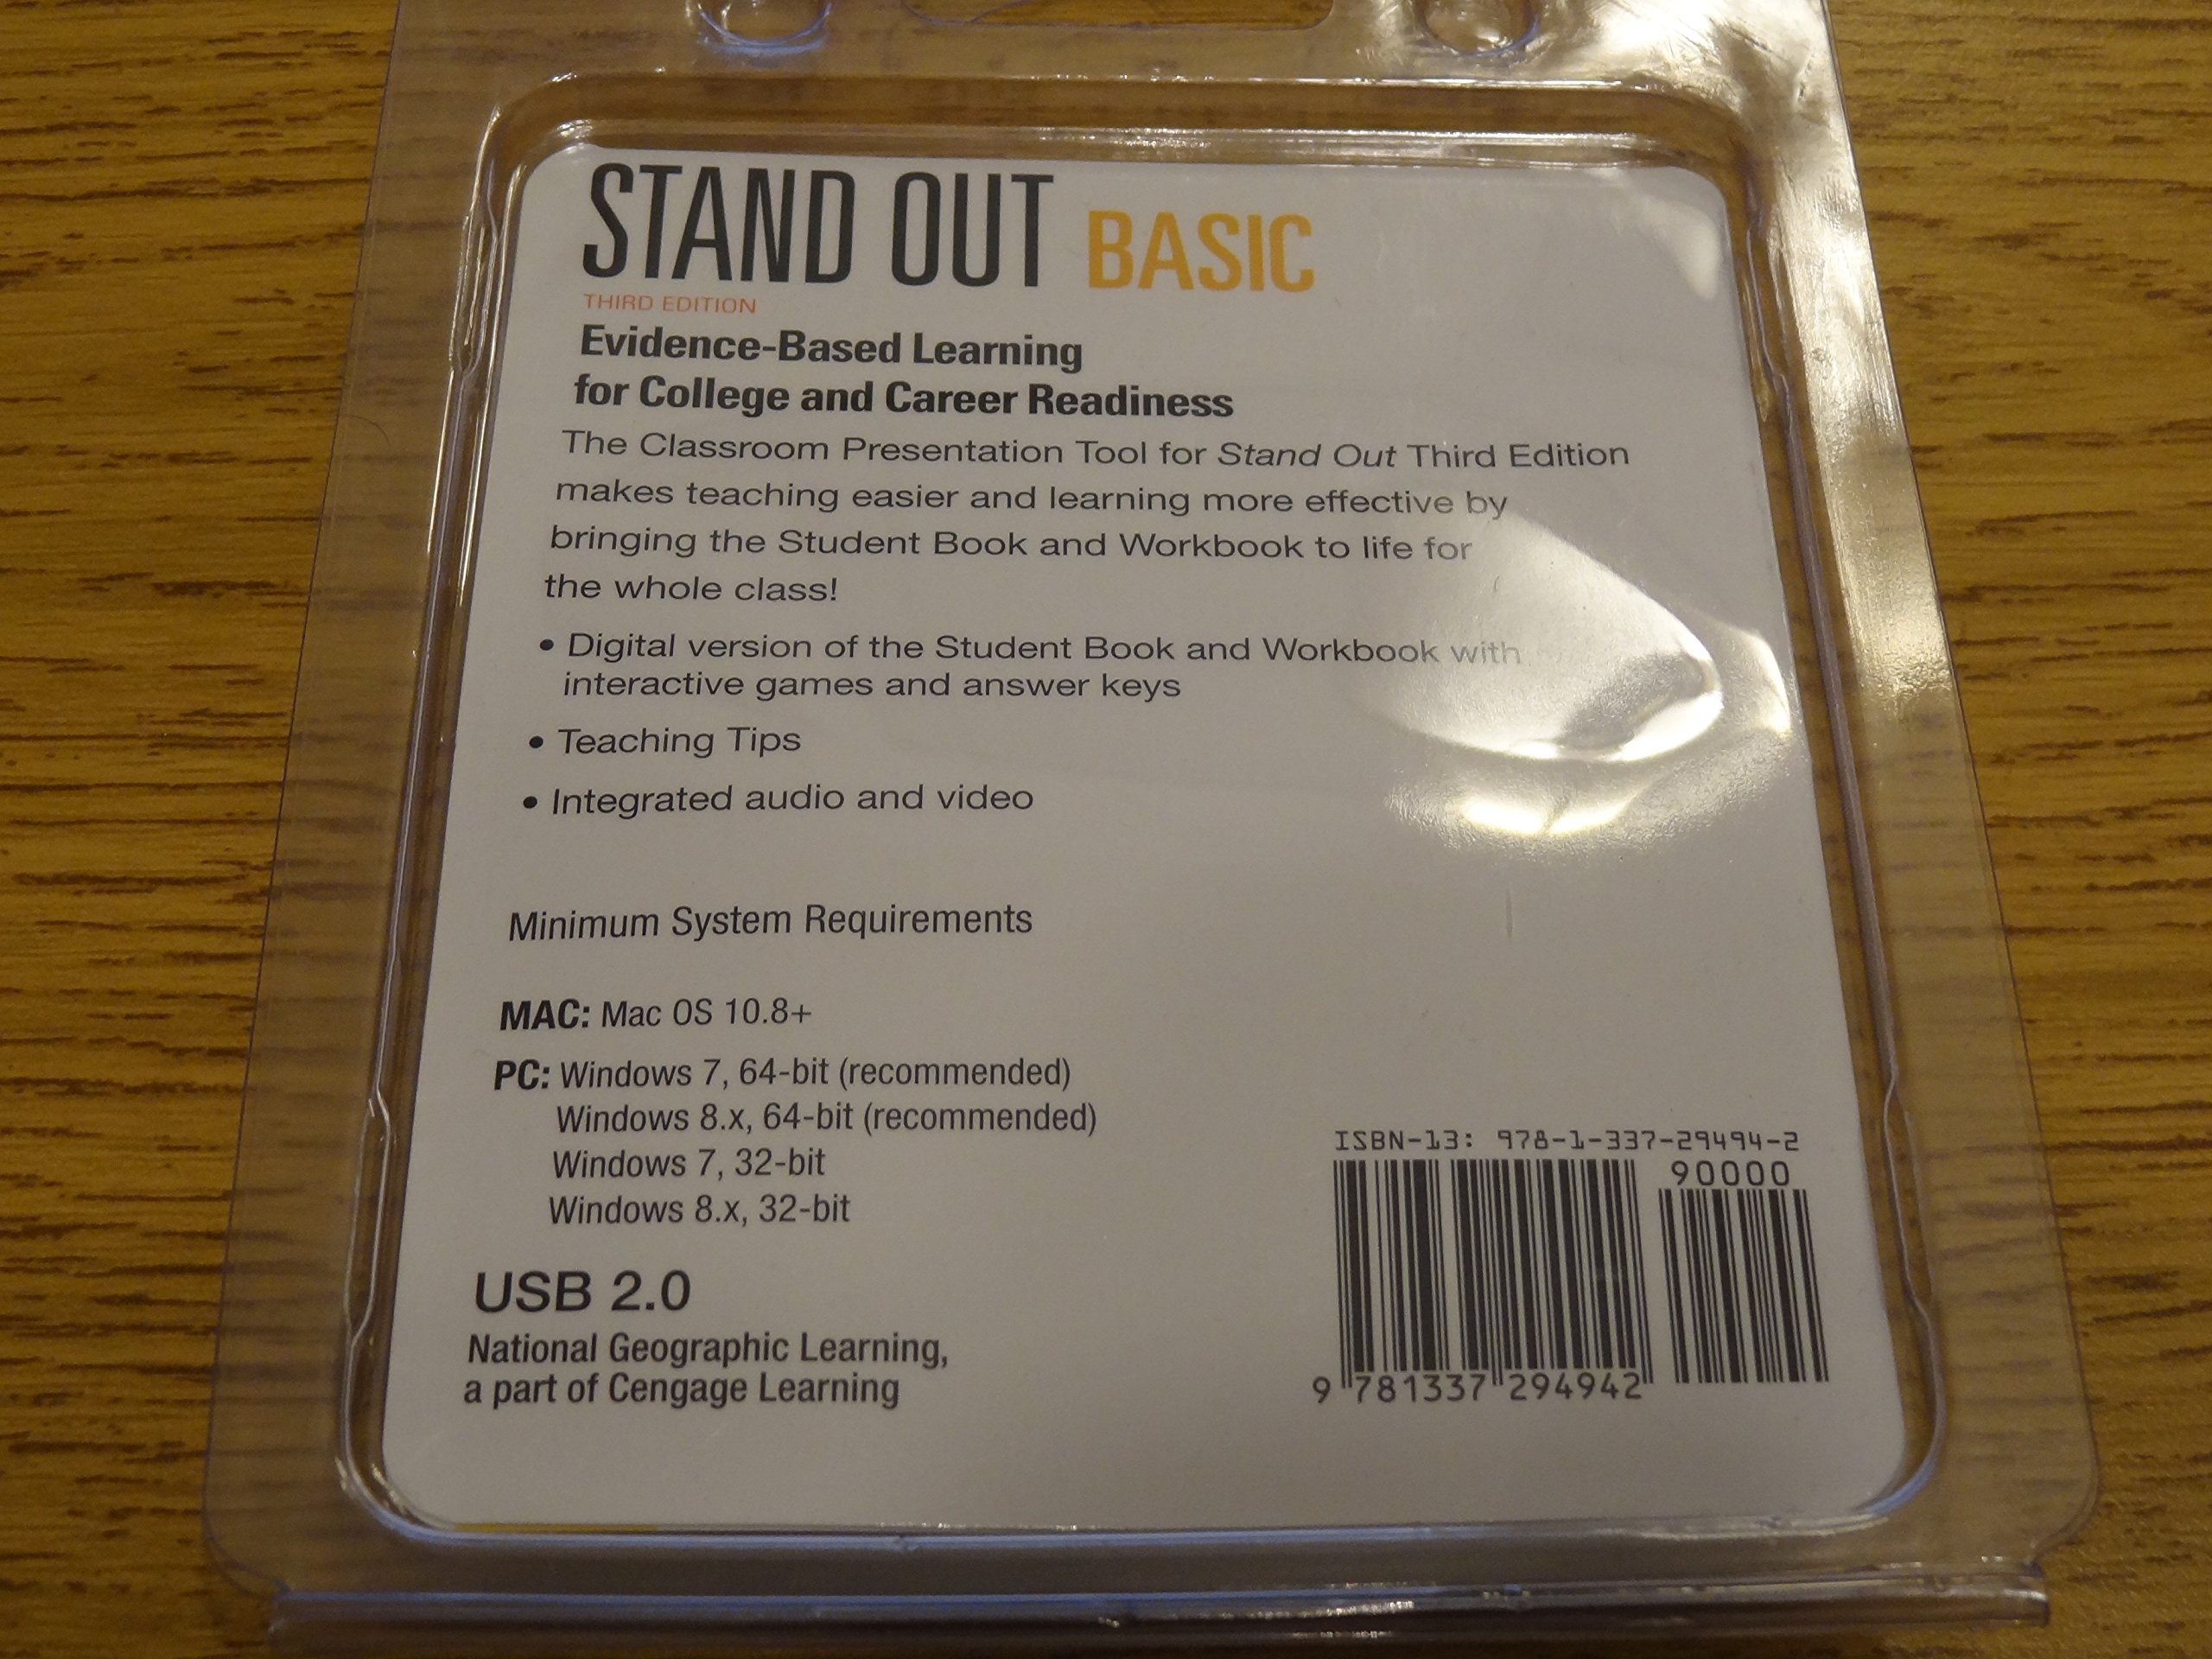 stand out basic third edition classroom presentation usb tool by